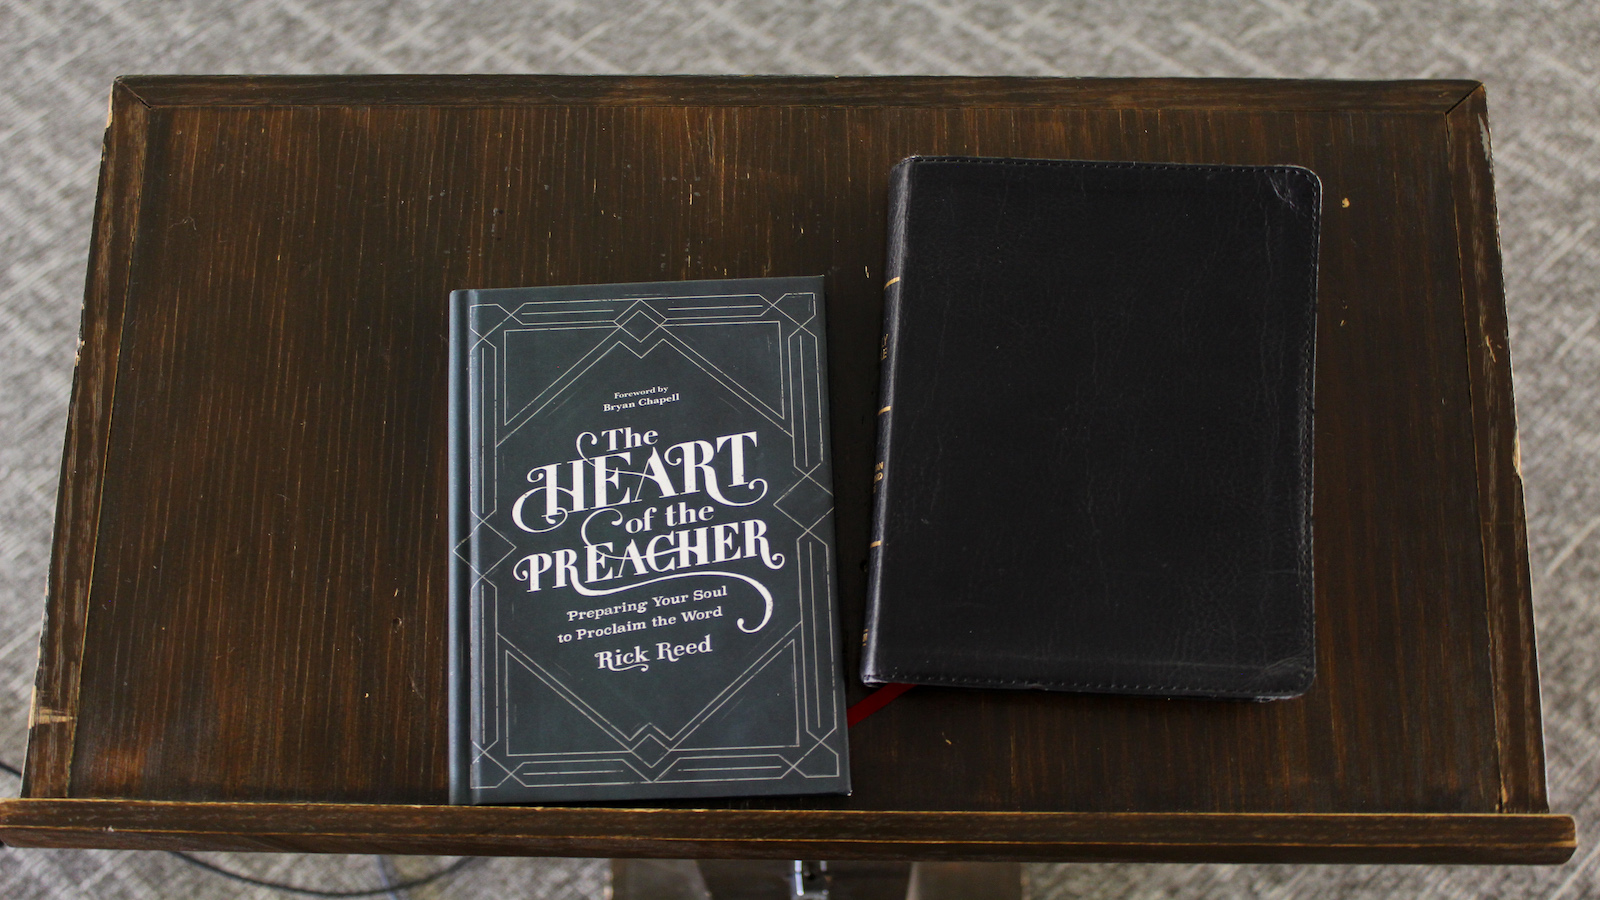 Forming the Heart of the Preacher